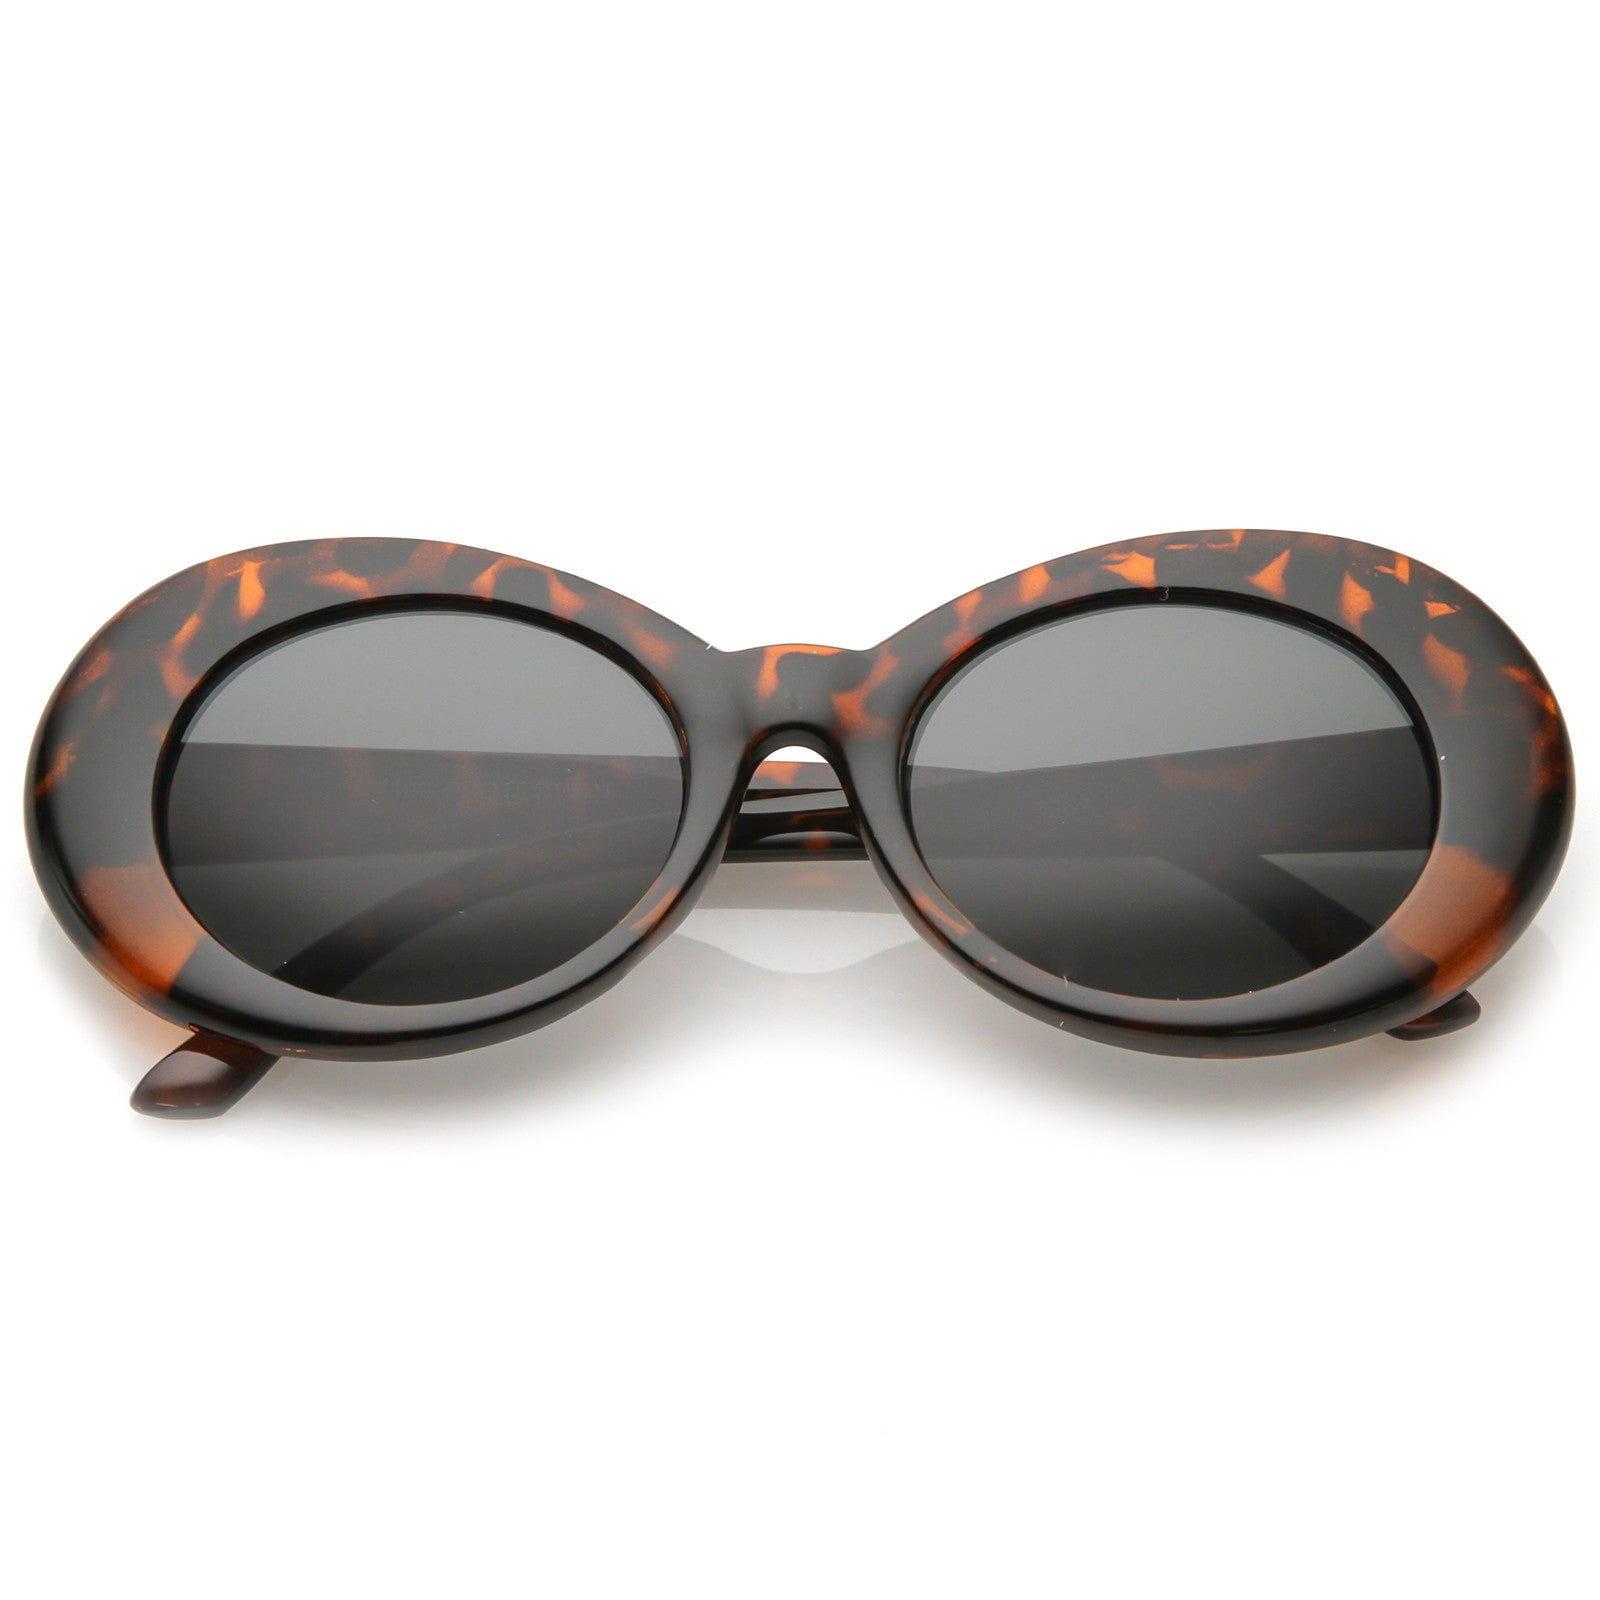 Retro Oval Sunglasses With Tapered Arms Neutral Colored Round Lens  51mm (Tortoise / Smoke)